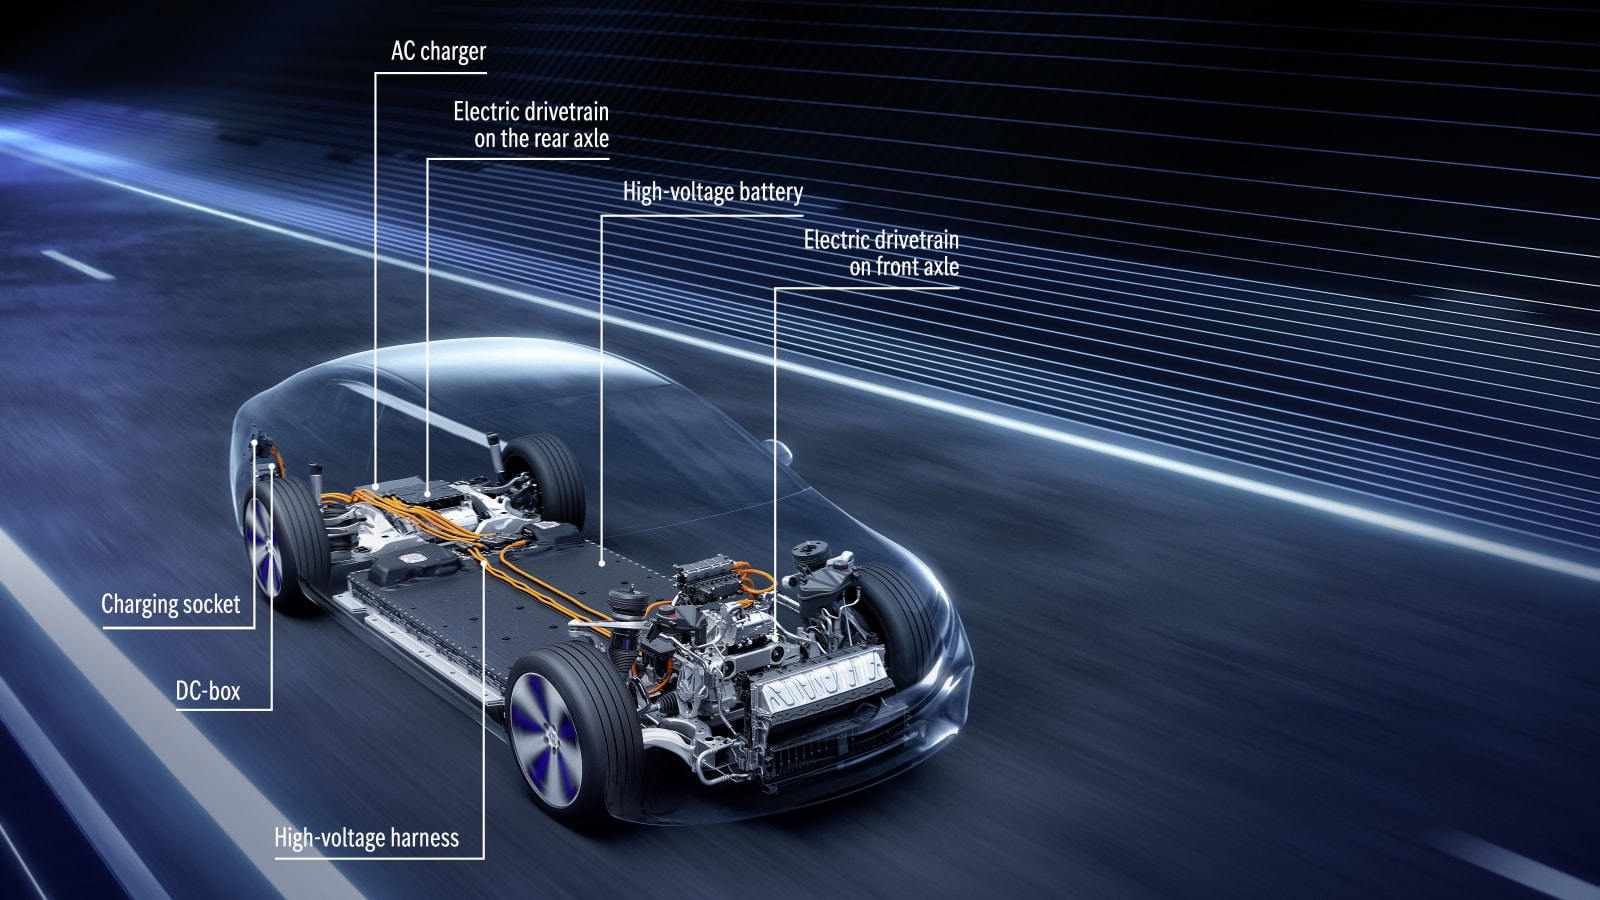 Mercedes-Benz EQS reveals its powertrain and battery secrets in detail